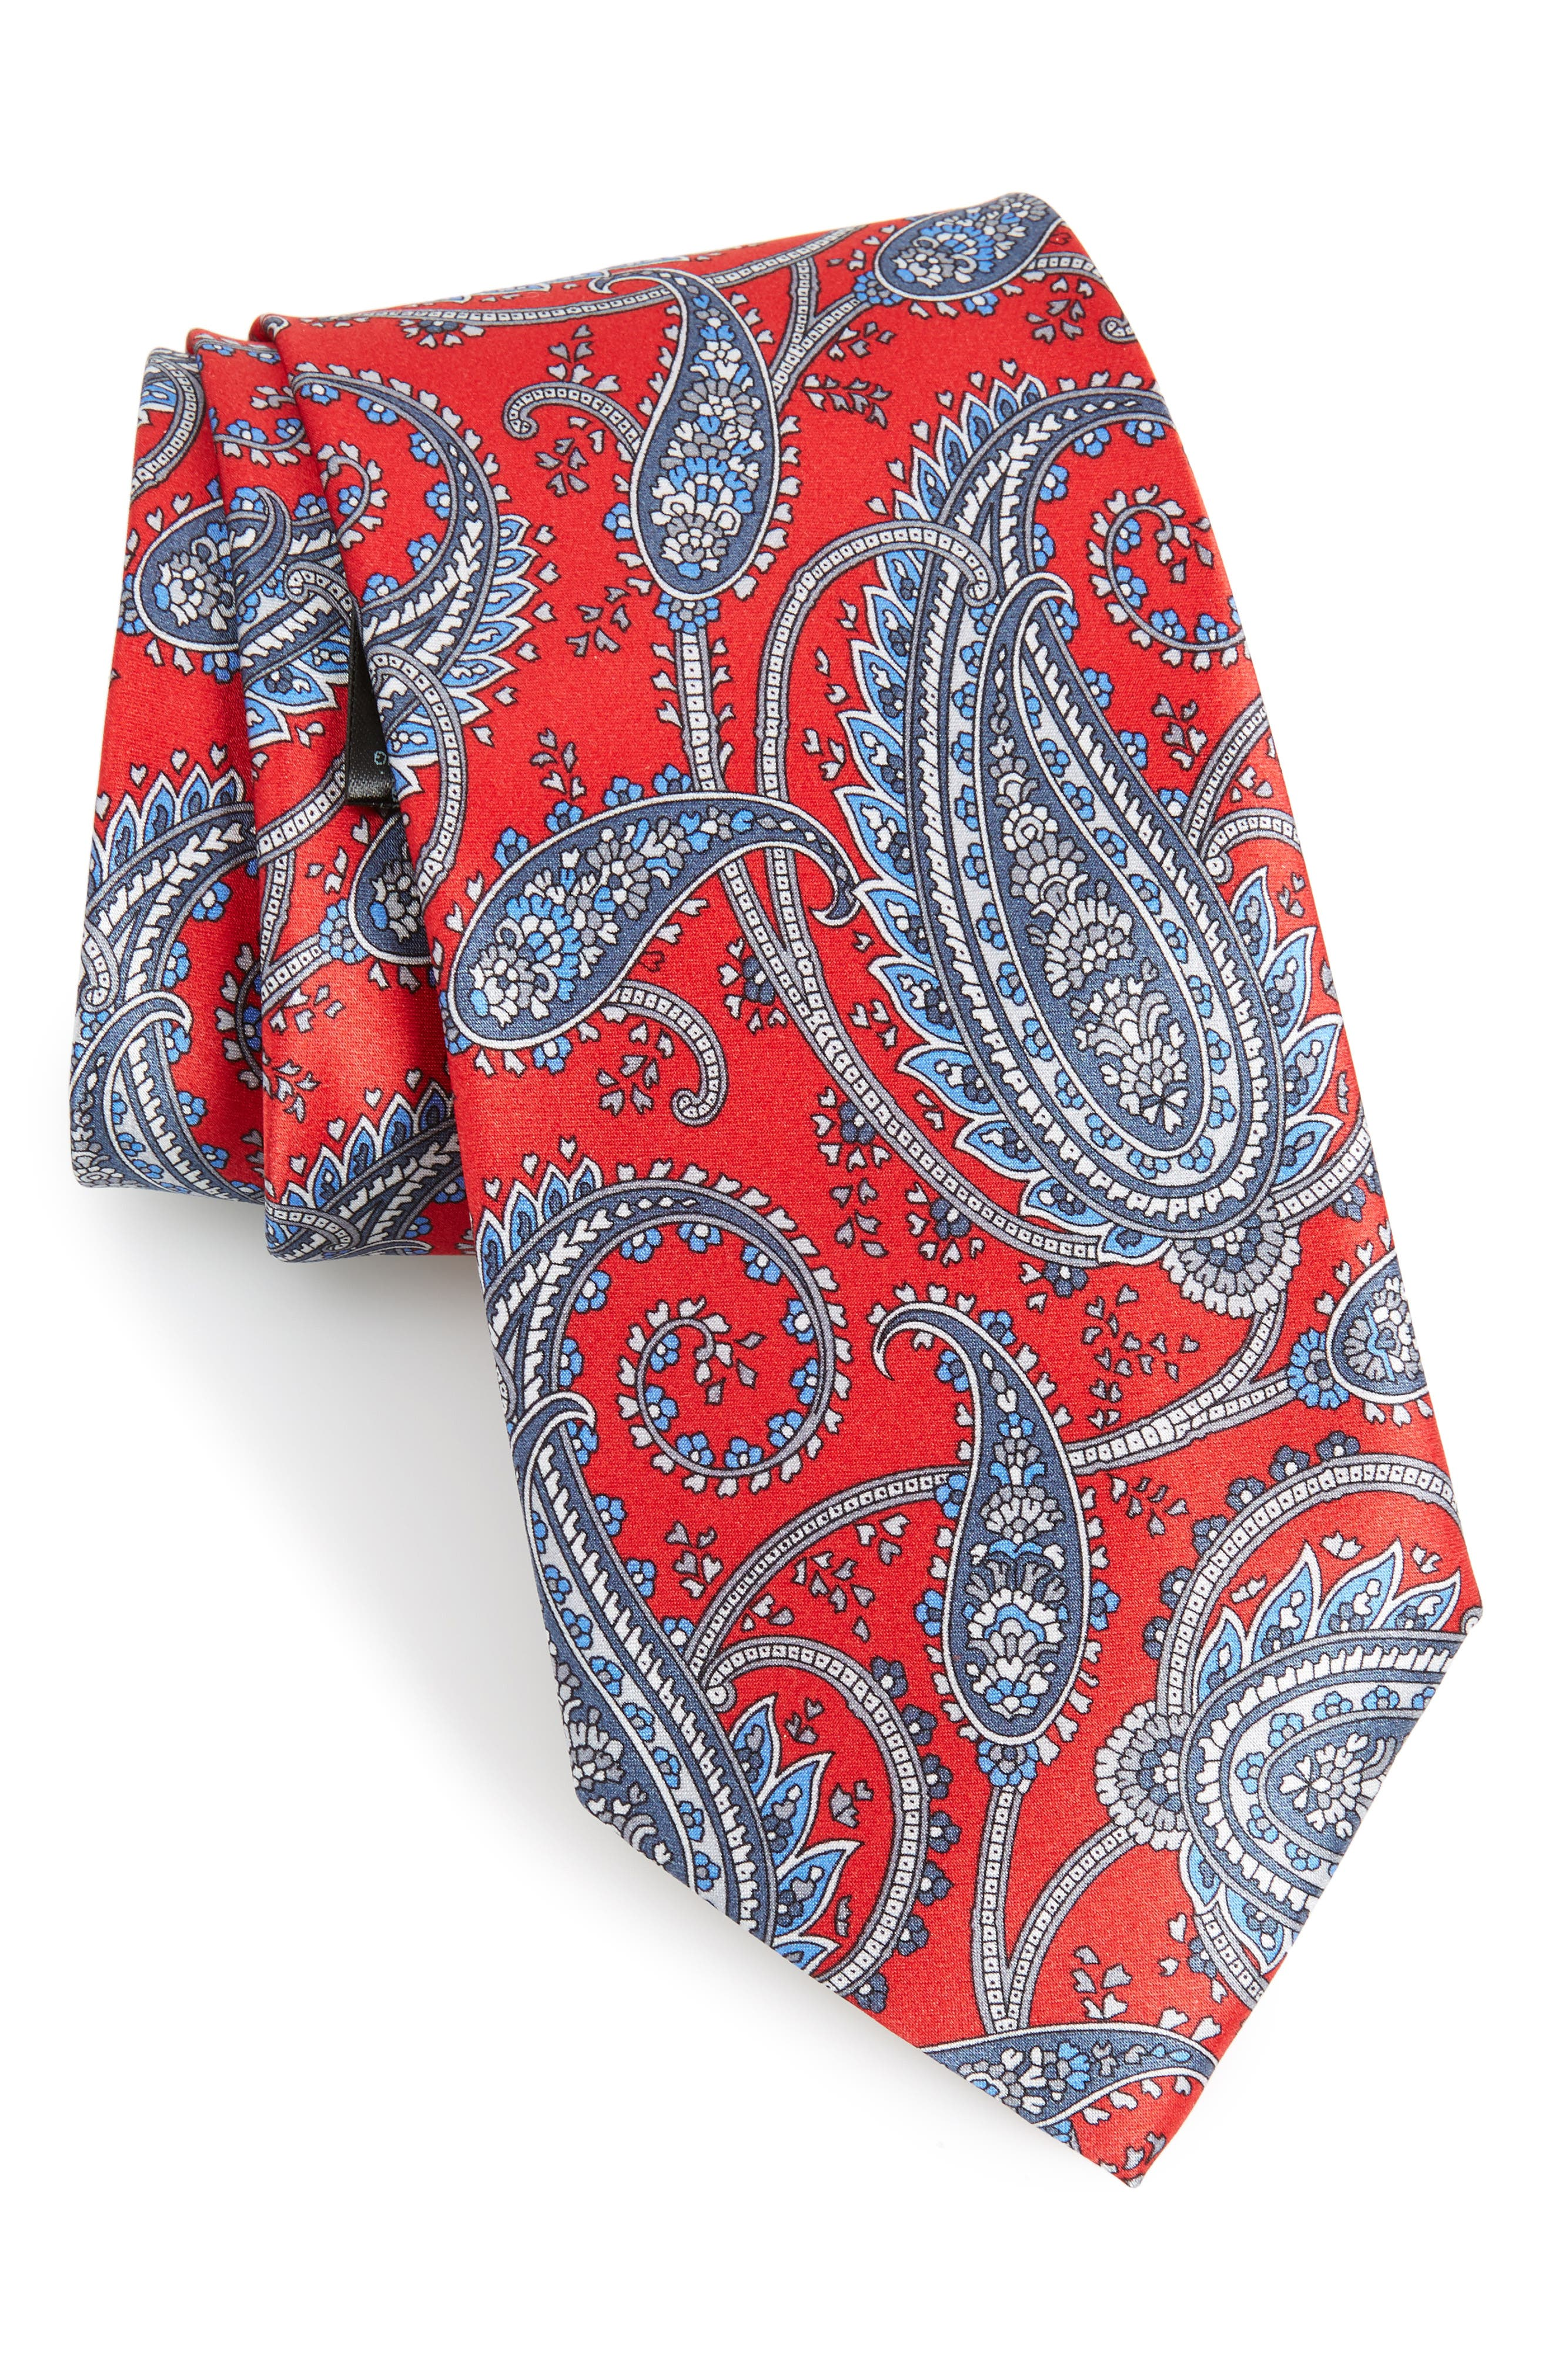 Alternate Image 1 Selected - Brioni Paisley Silk Tie